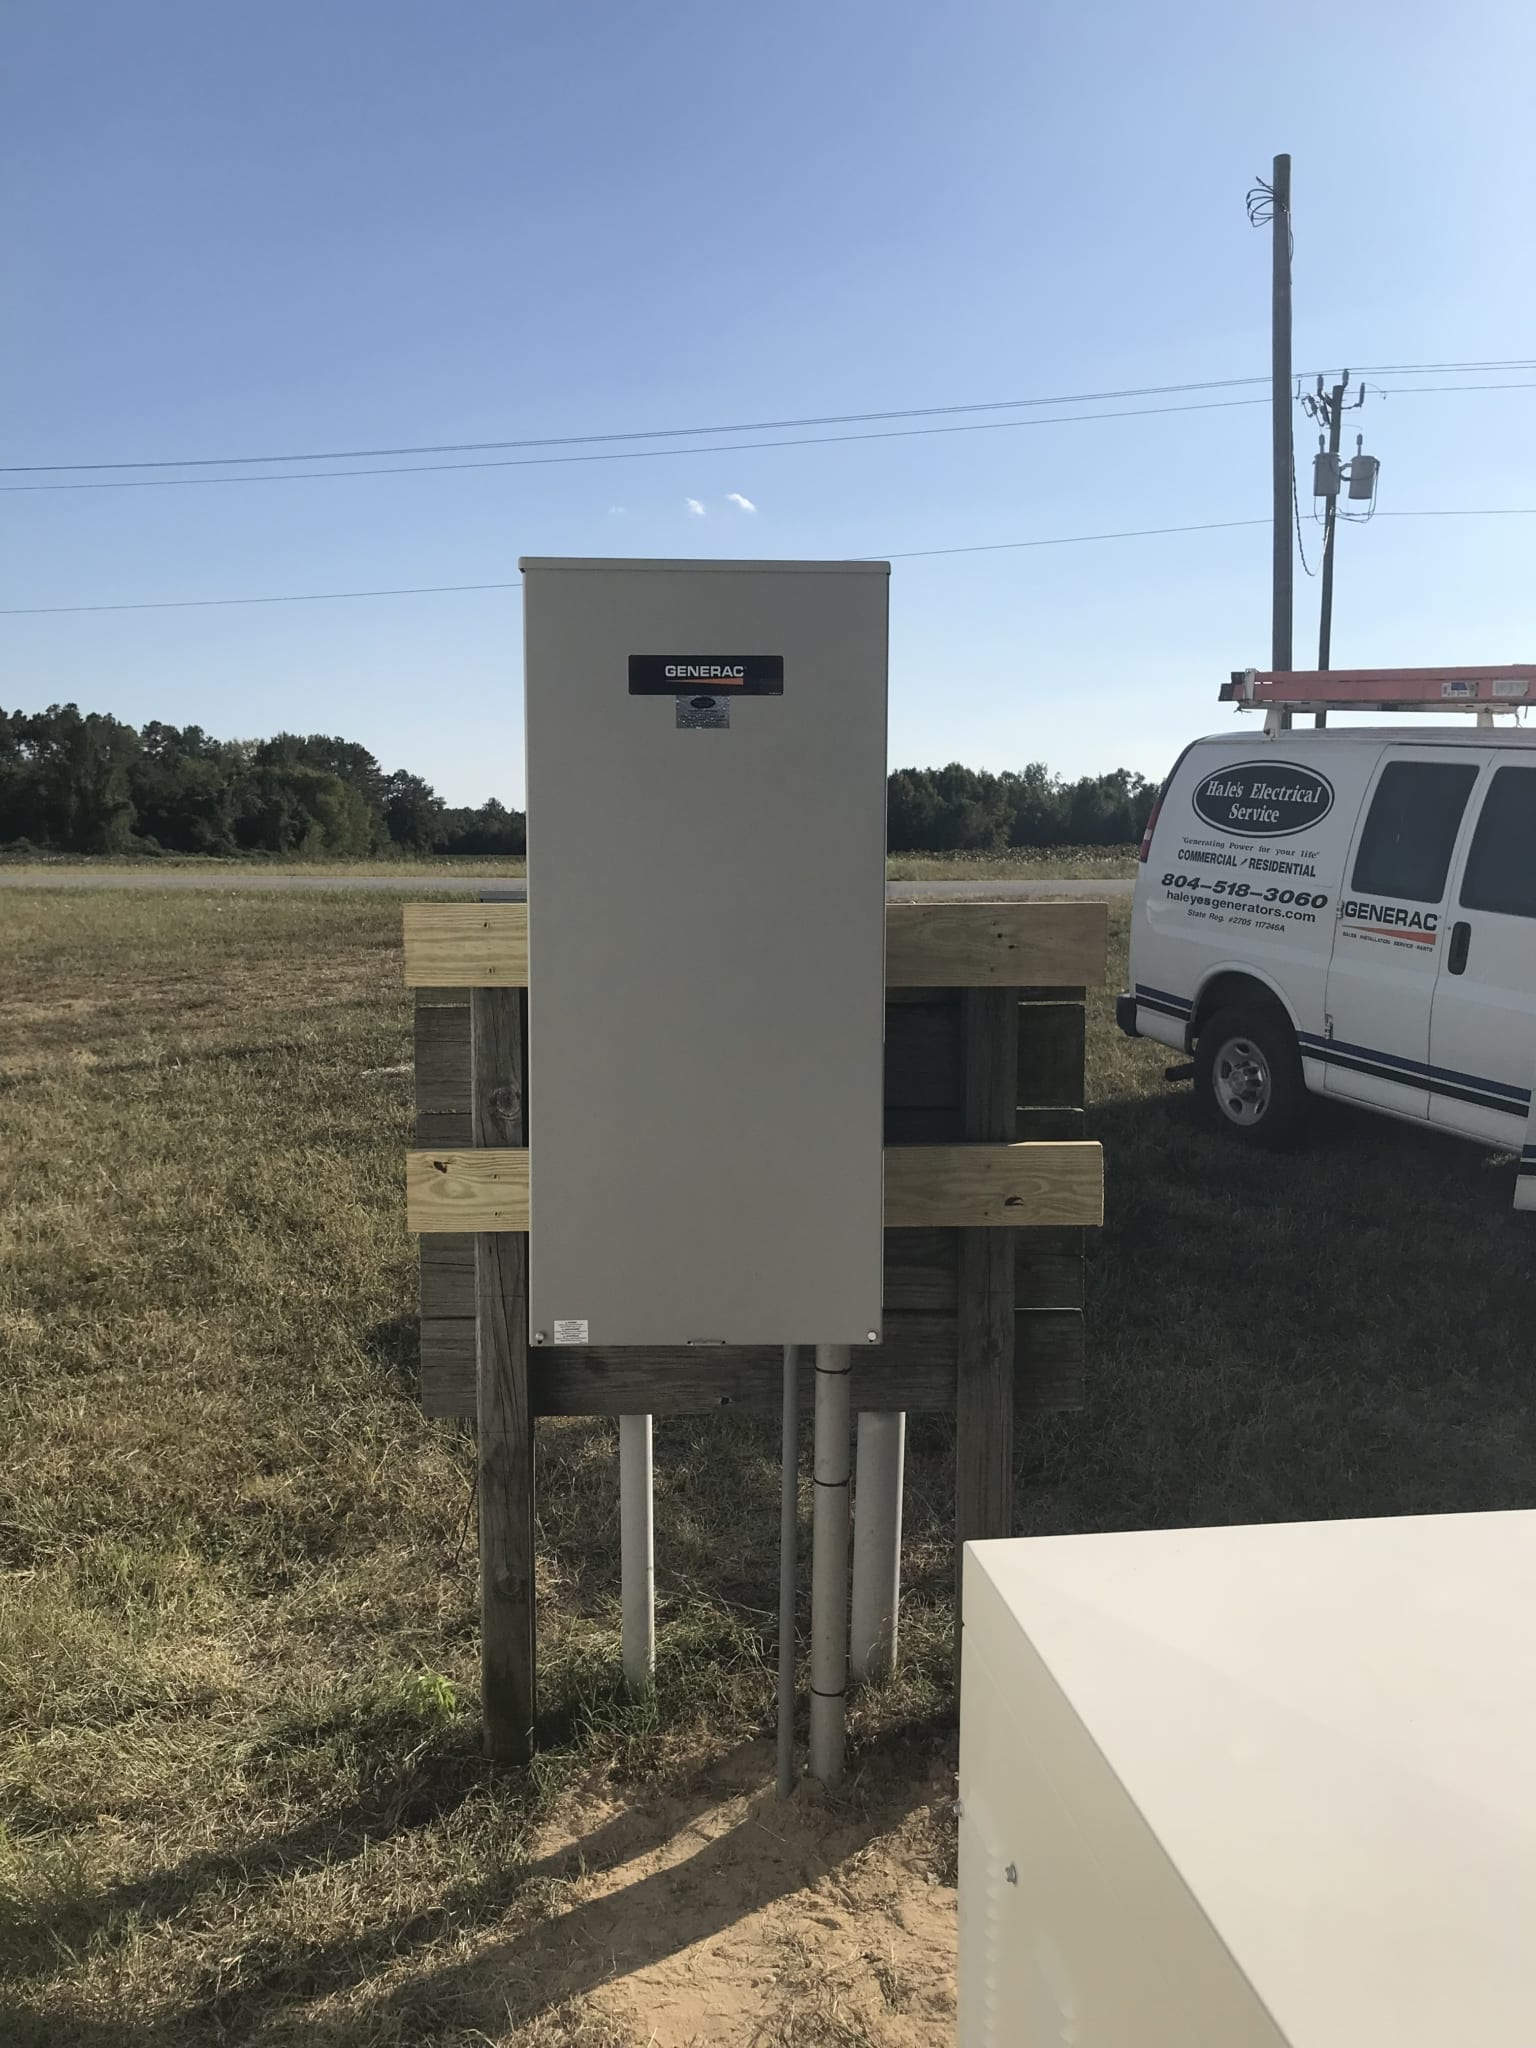 9.25.19 Sussex Generac Automatic Transfer Switch